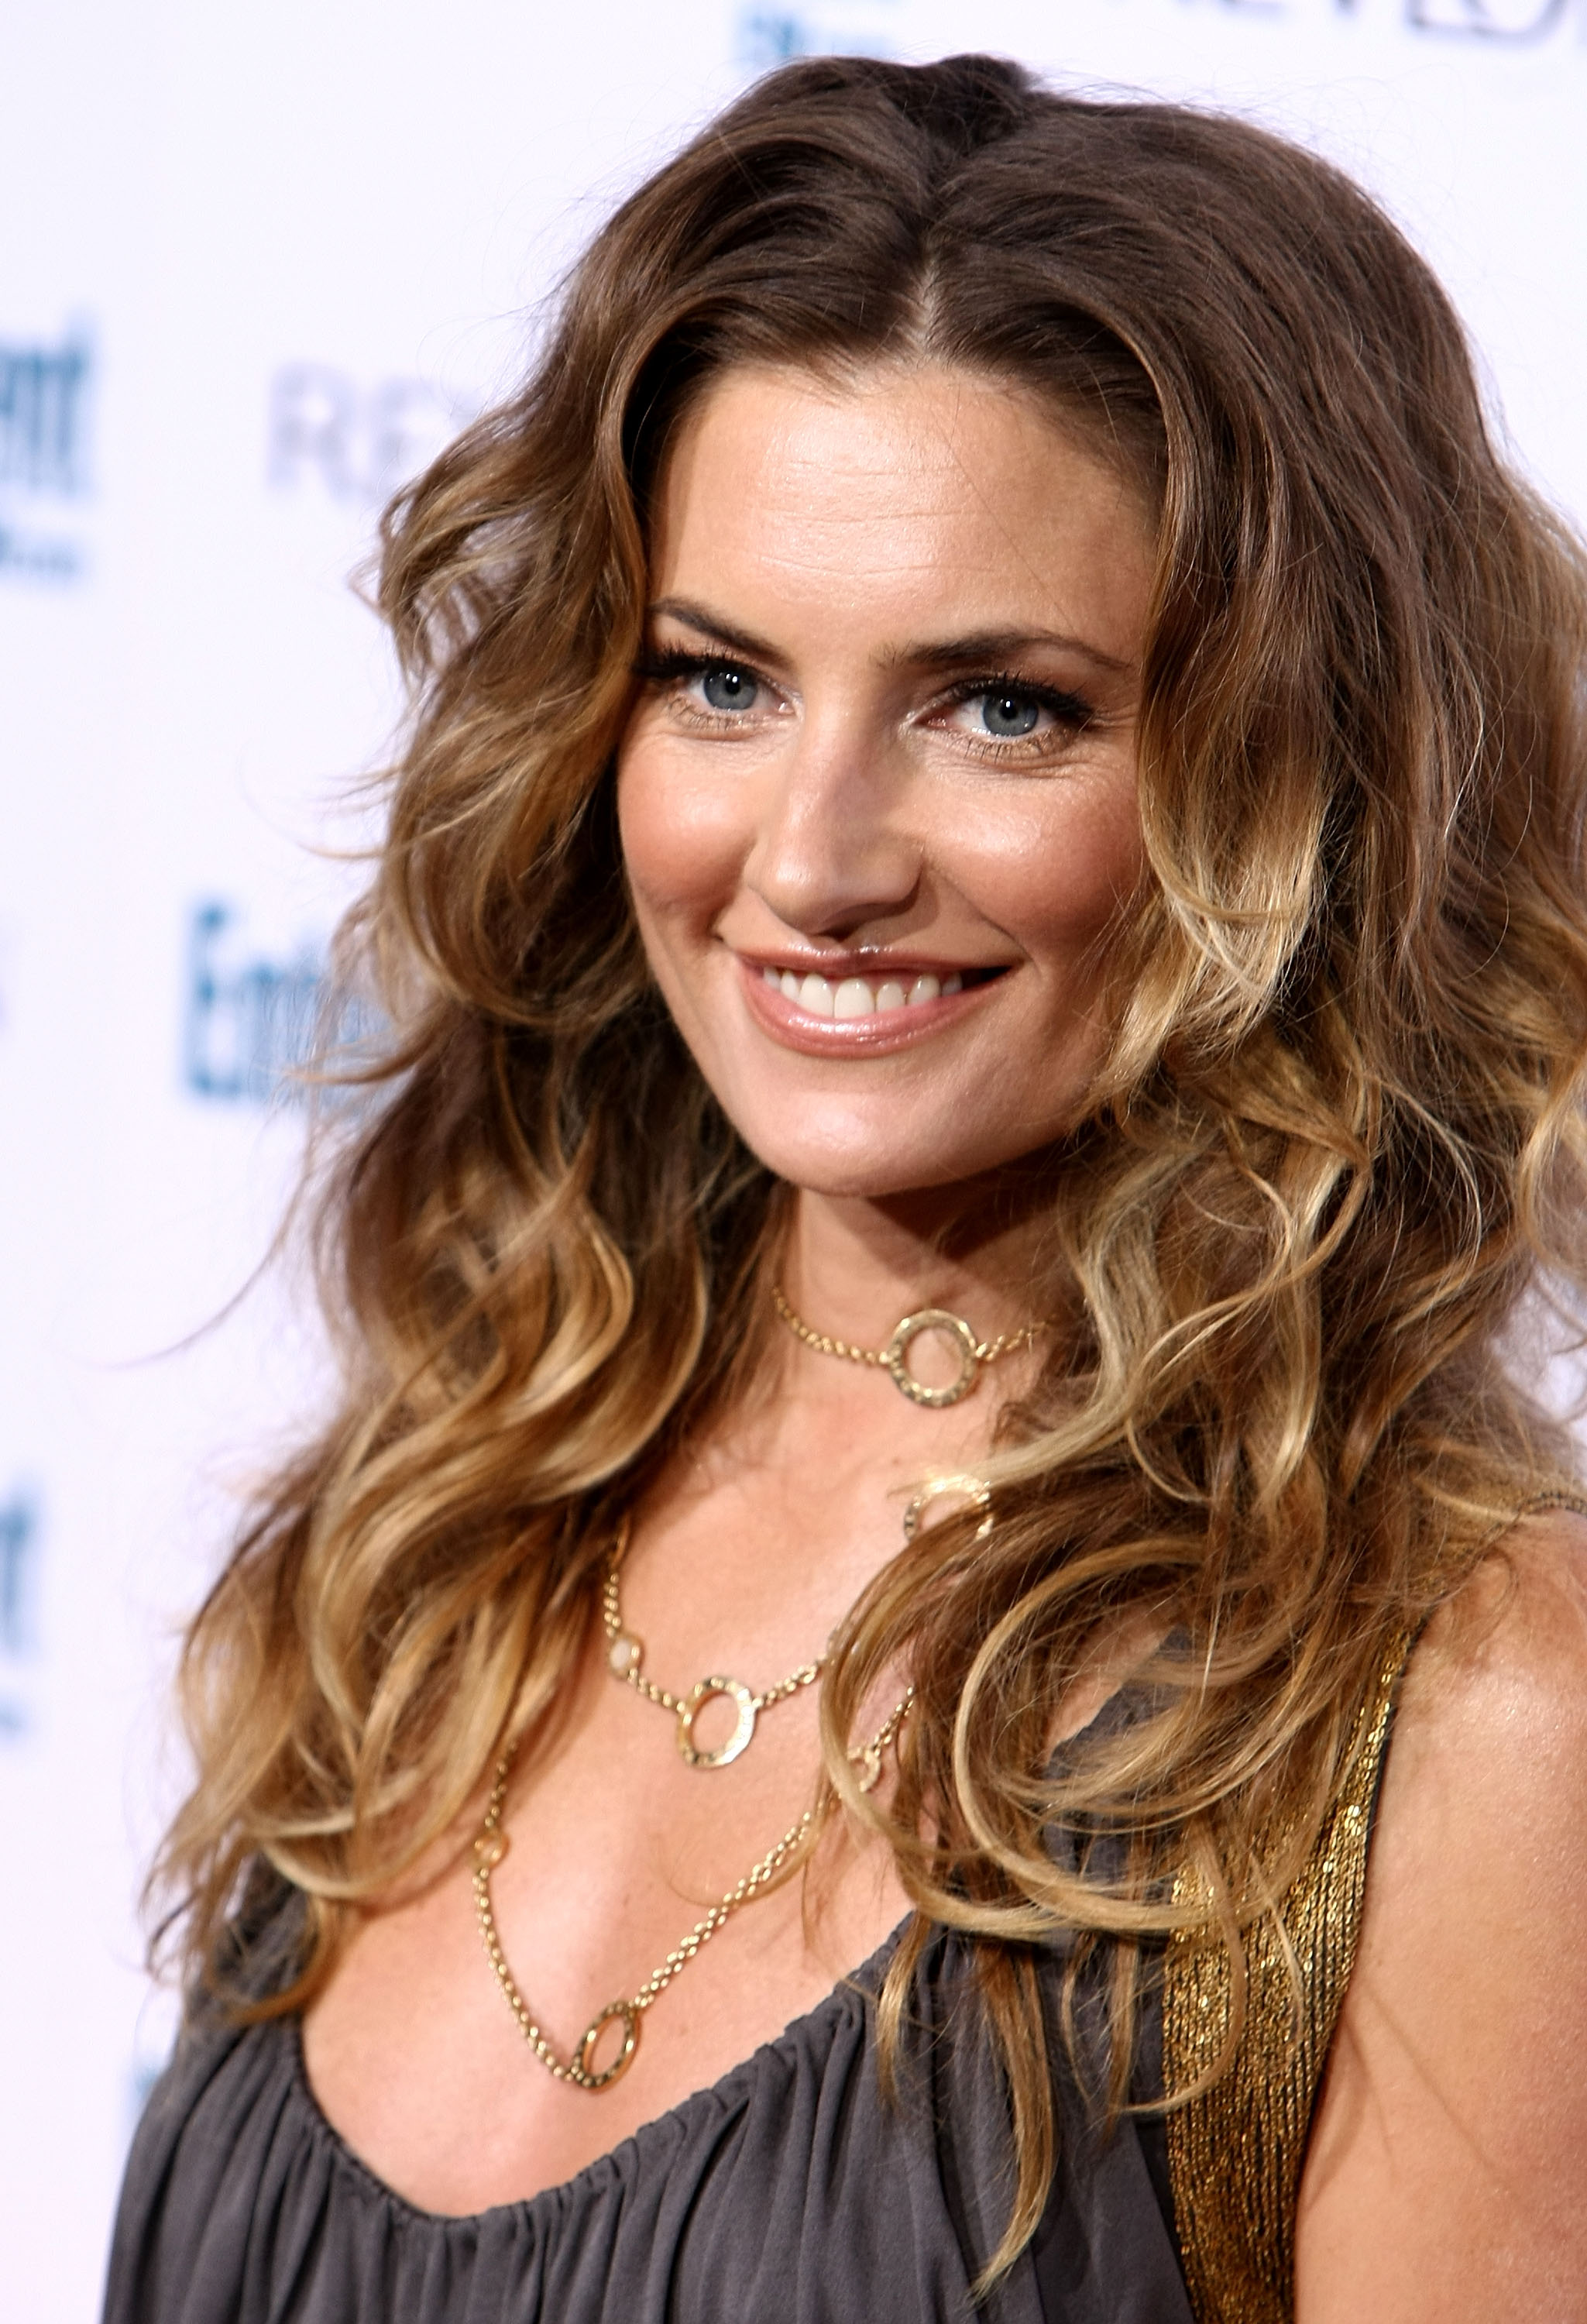 99458_Celebutopia-Madchen_Amick-Entertainment_Weekly15s_Sixth_Annual_Pre-Emmy_Celebration_party-01_122_83lo.jpg